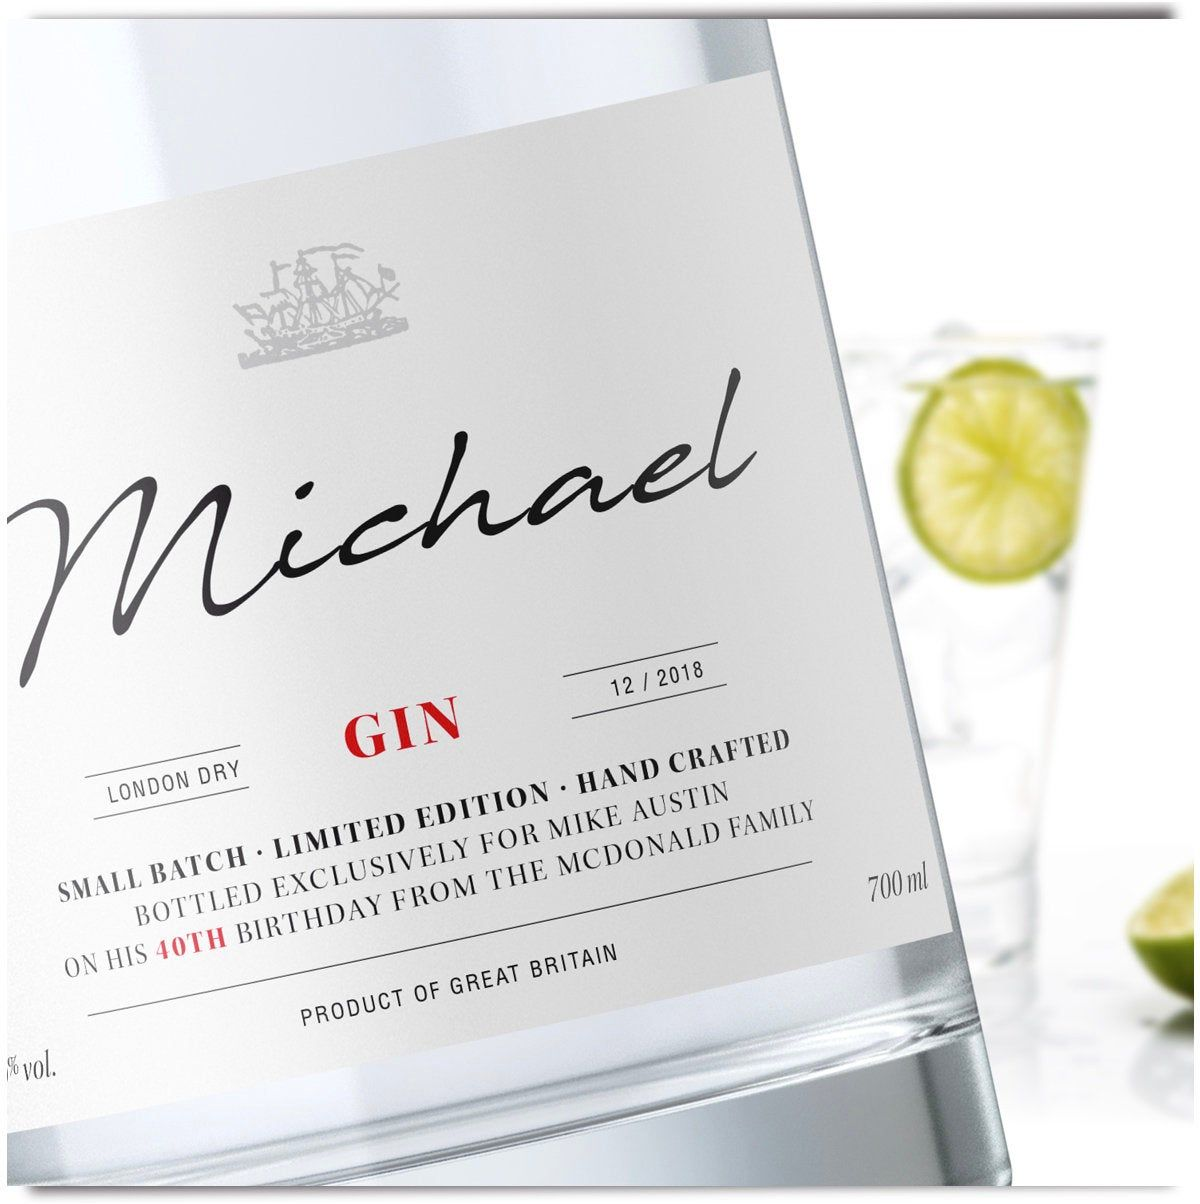 Personalised Gin label // Birthday Gin Labels // Unique Birthday Gift // Personalised Gifts // Custom Wine Label // Original Gin #personalise #BirthdayGin #Etikett #Aufkleber #personalisiert #Gin #Custom #PersonalisedLabel #Label #gift